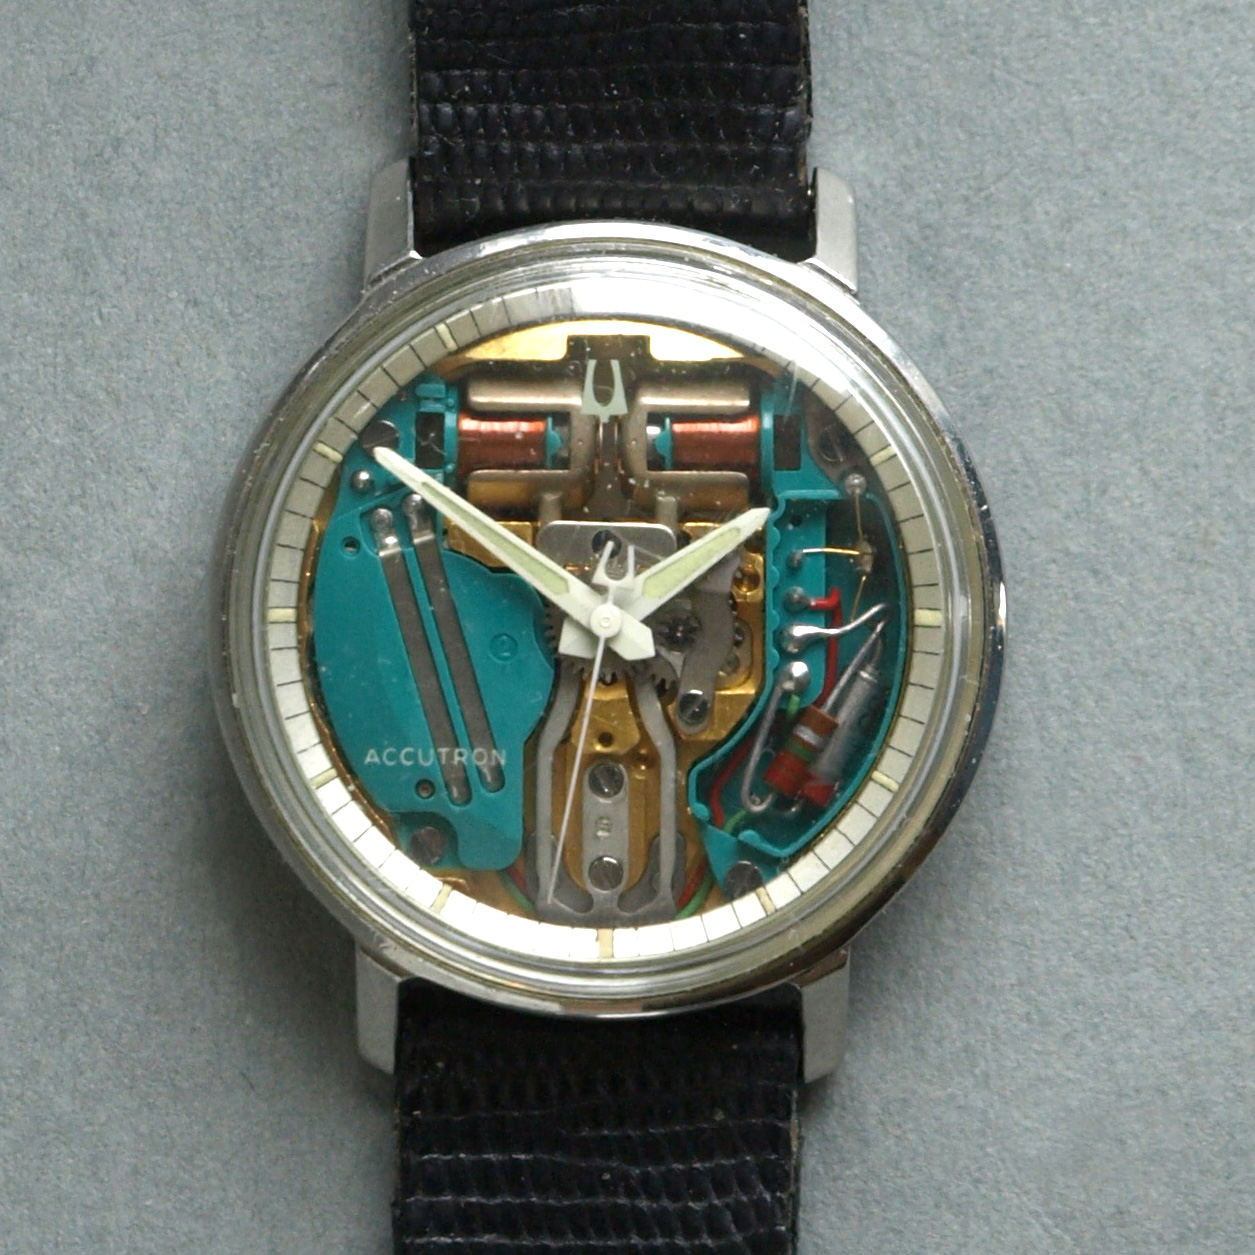 https://upload.wikimedia.org/wikipedia/commons/1/14/Accutron.jpg